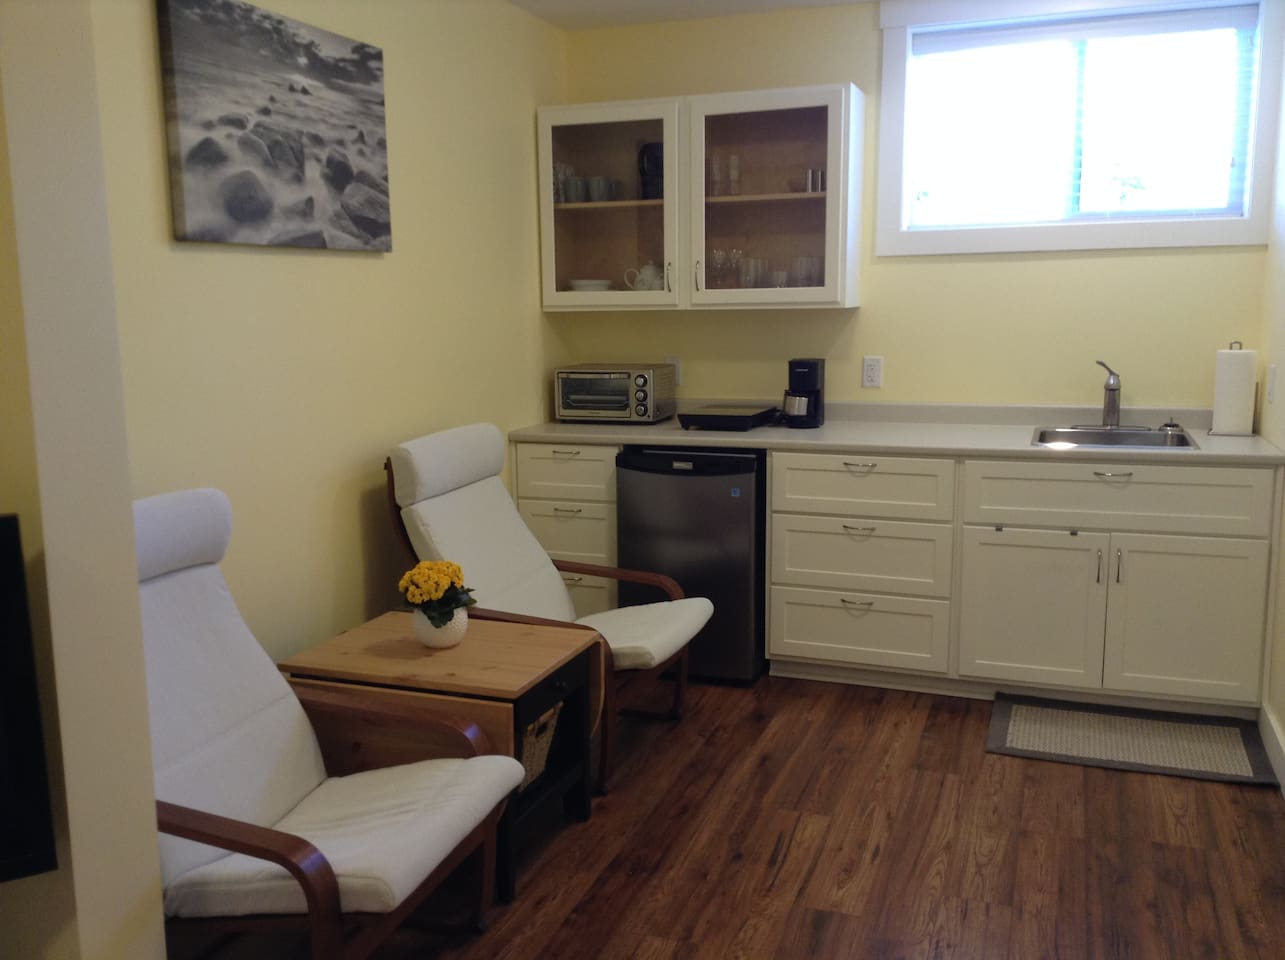 Kitchenette with all things you need and a table that you can make bigger.